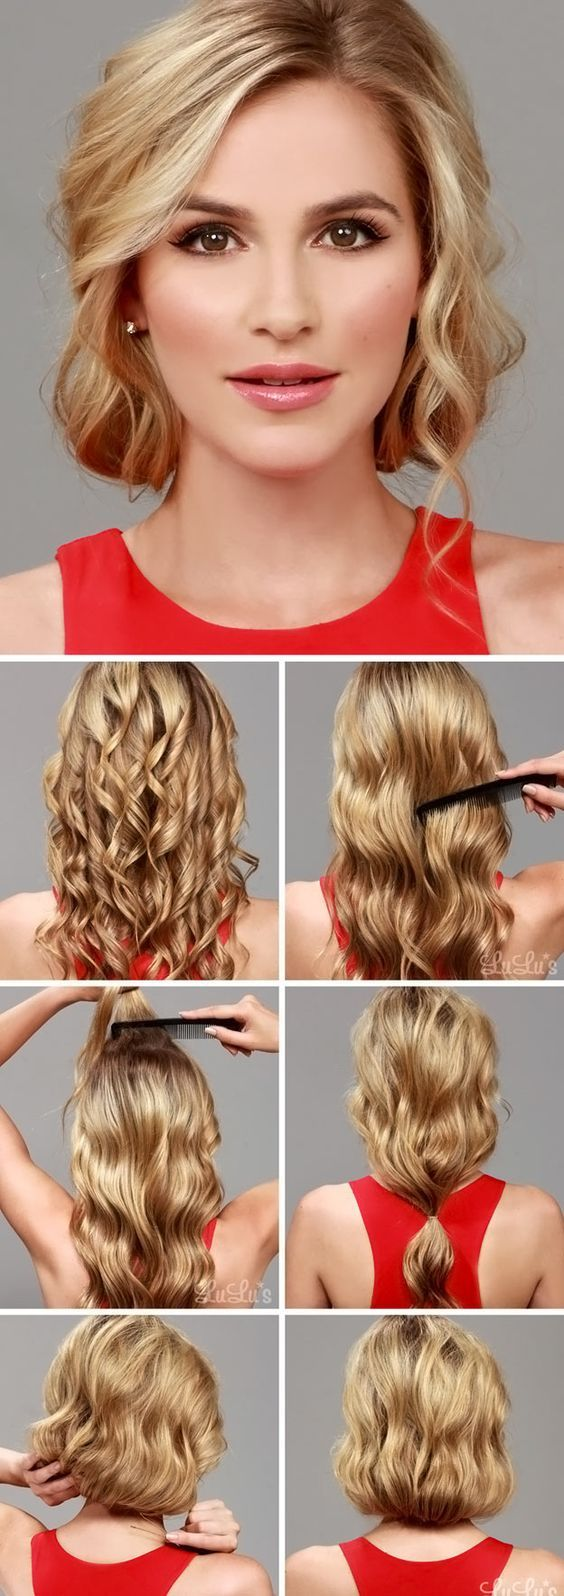 Whether You Are Going To School Work Family Function Or Even A Date Here Are Some Very Fast And Super Cute Hairstyles That Take Just A Couple Min Gatsby Hair